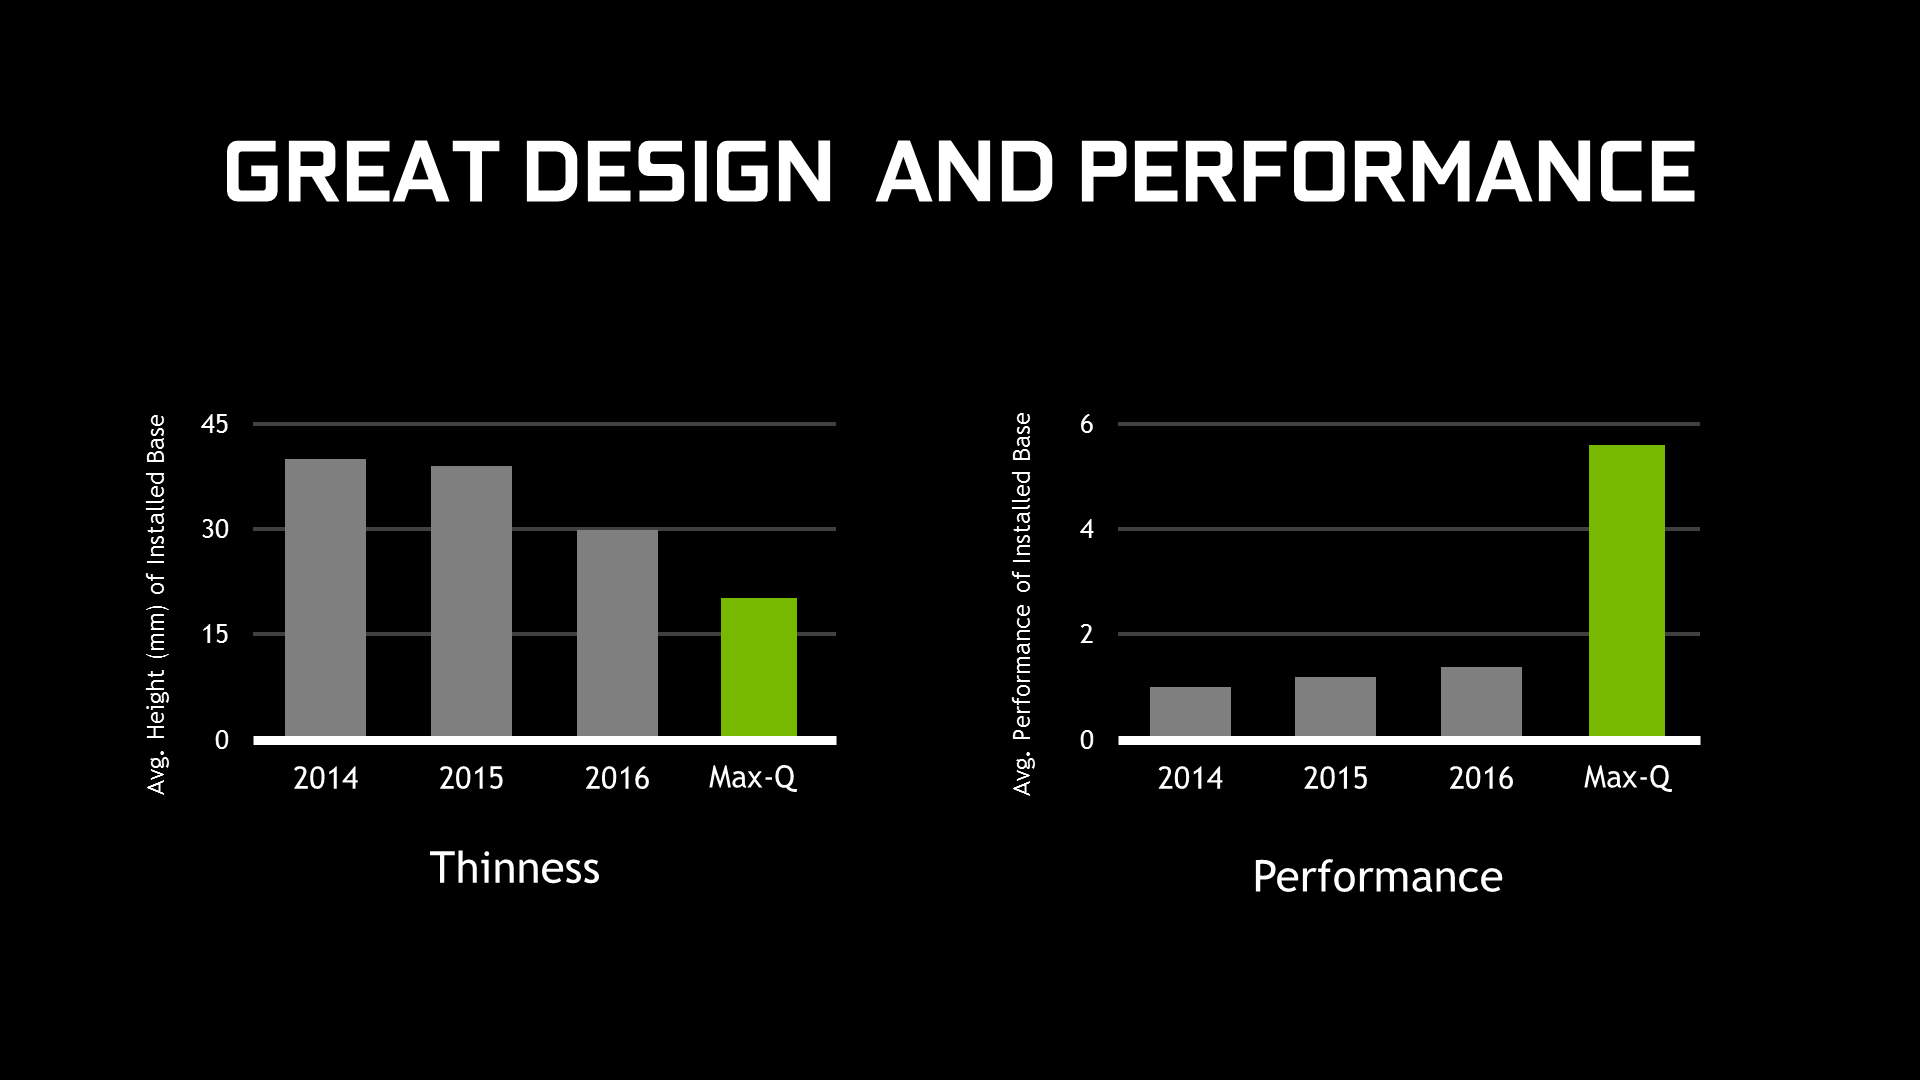 nvidia-geforce-gtx-max-q-laptops-great-design-and-performance-1920.png